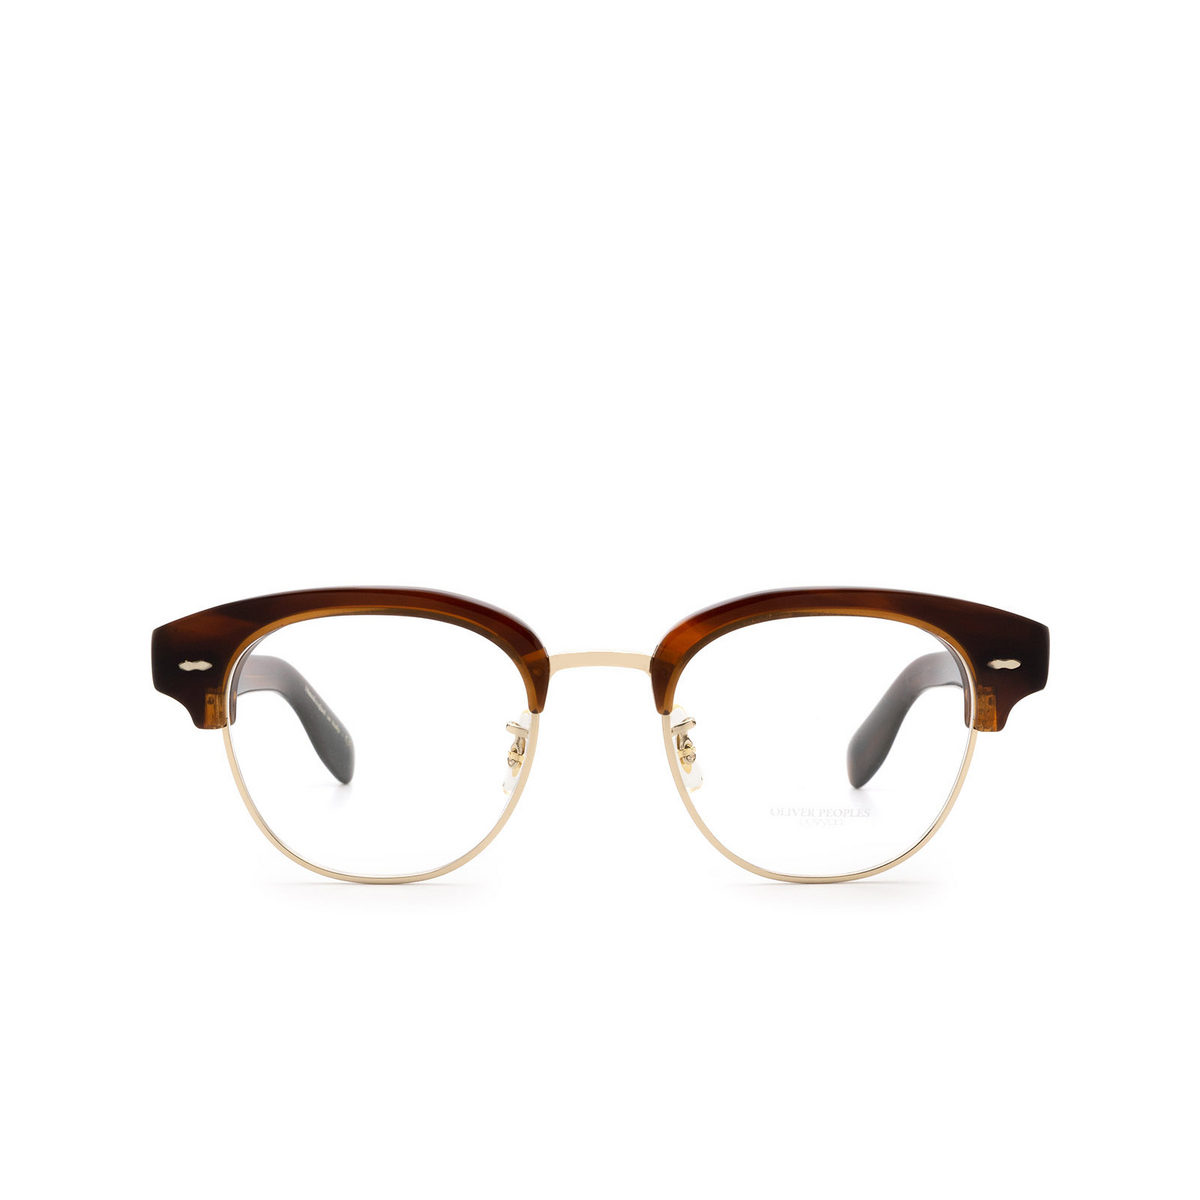 Oliver Peoples® Square Eyeglasses: Cary Grant 2 OV5436 color Grant Tortoise 1679.